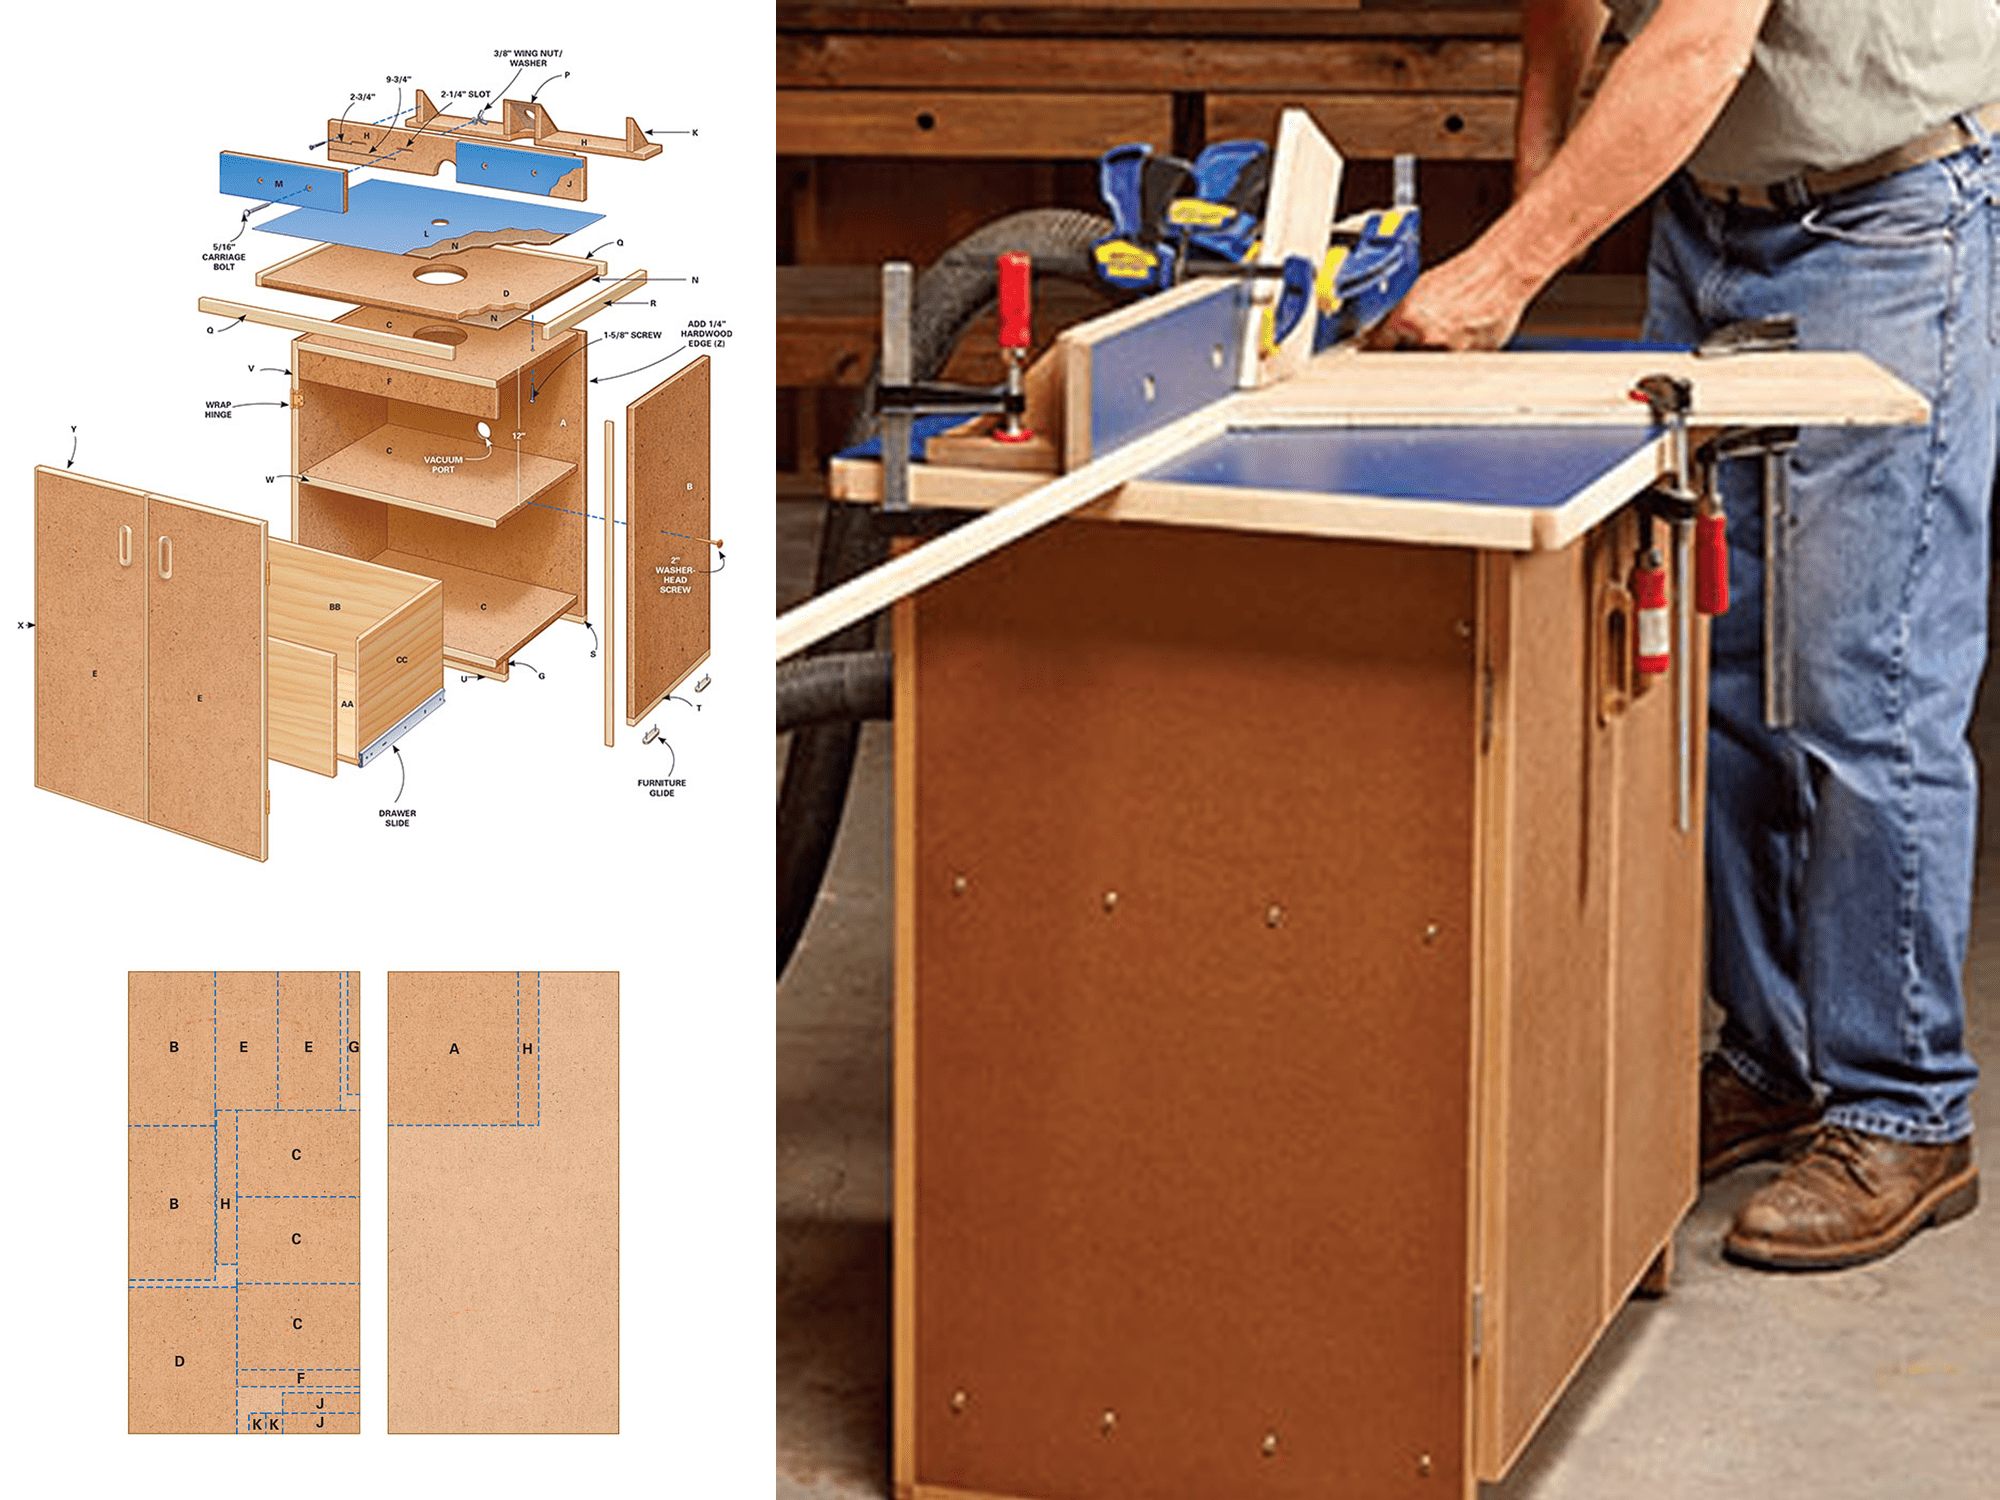 Router table plans uk router image oakwoodclub 9 diy router table plans you can use right now keyboard keysfo Image collections